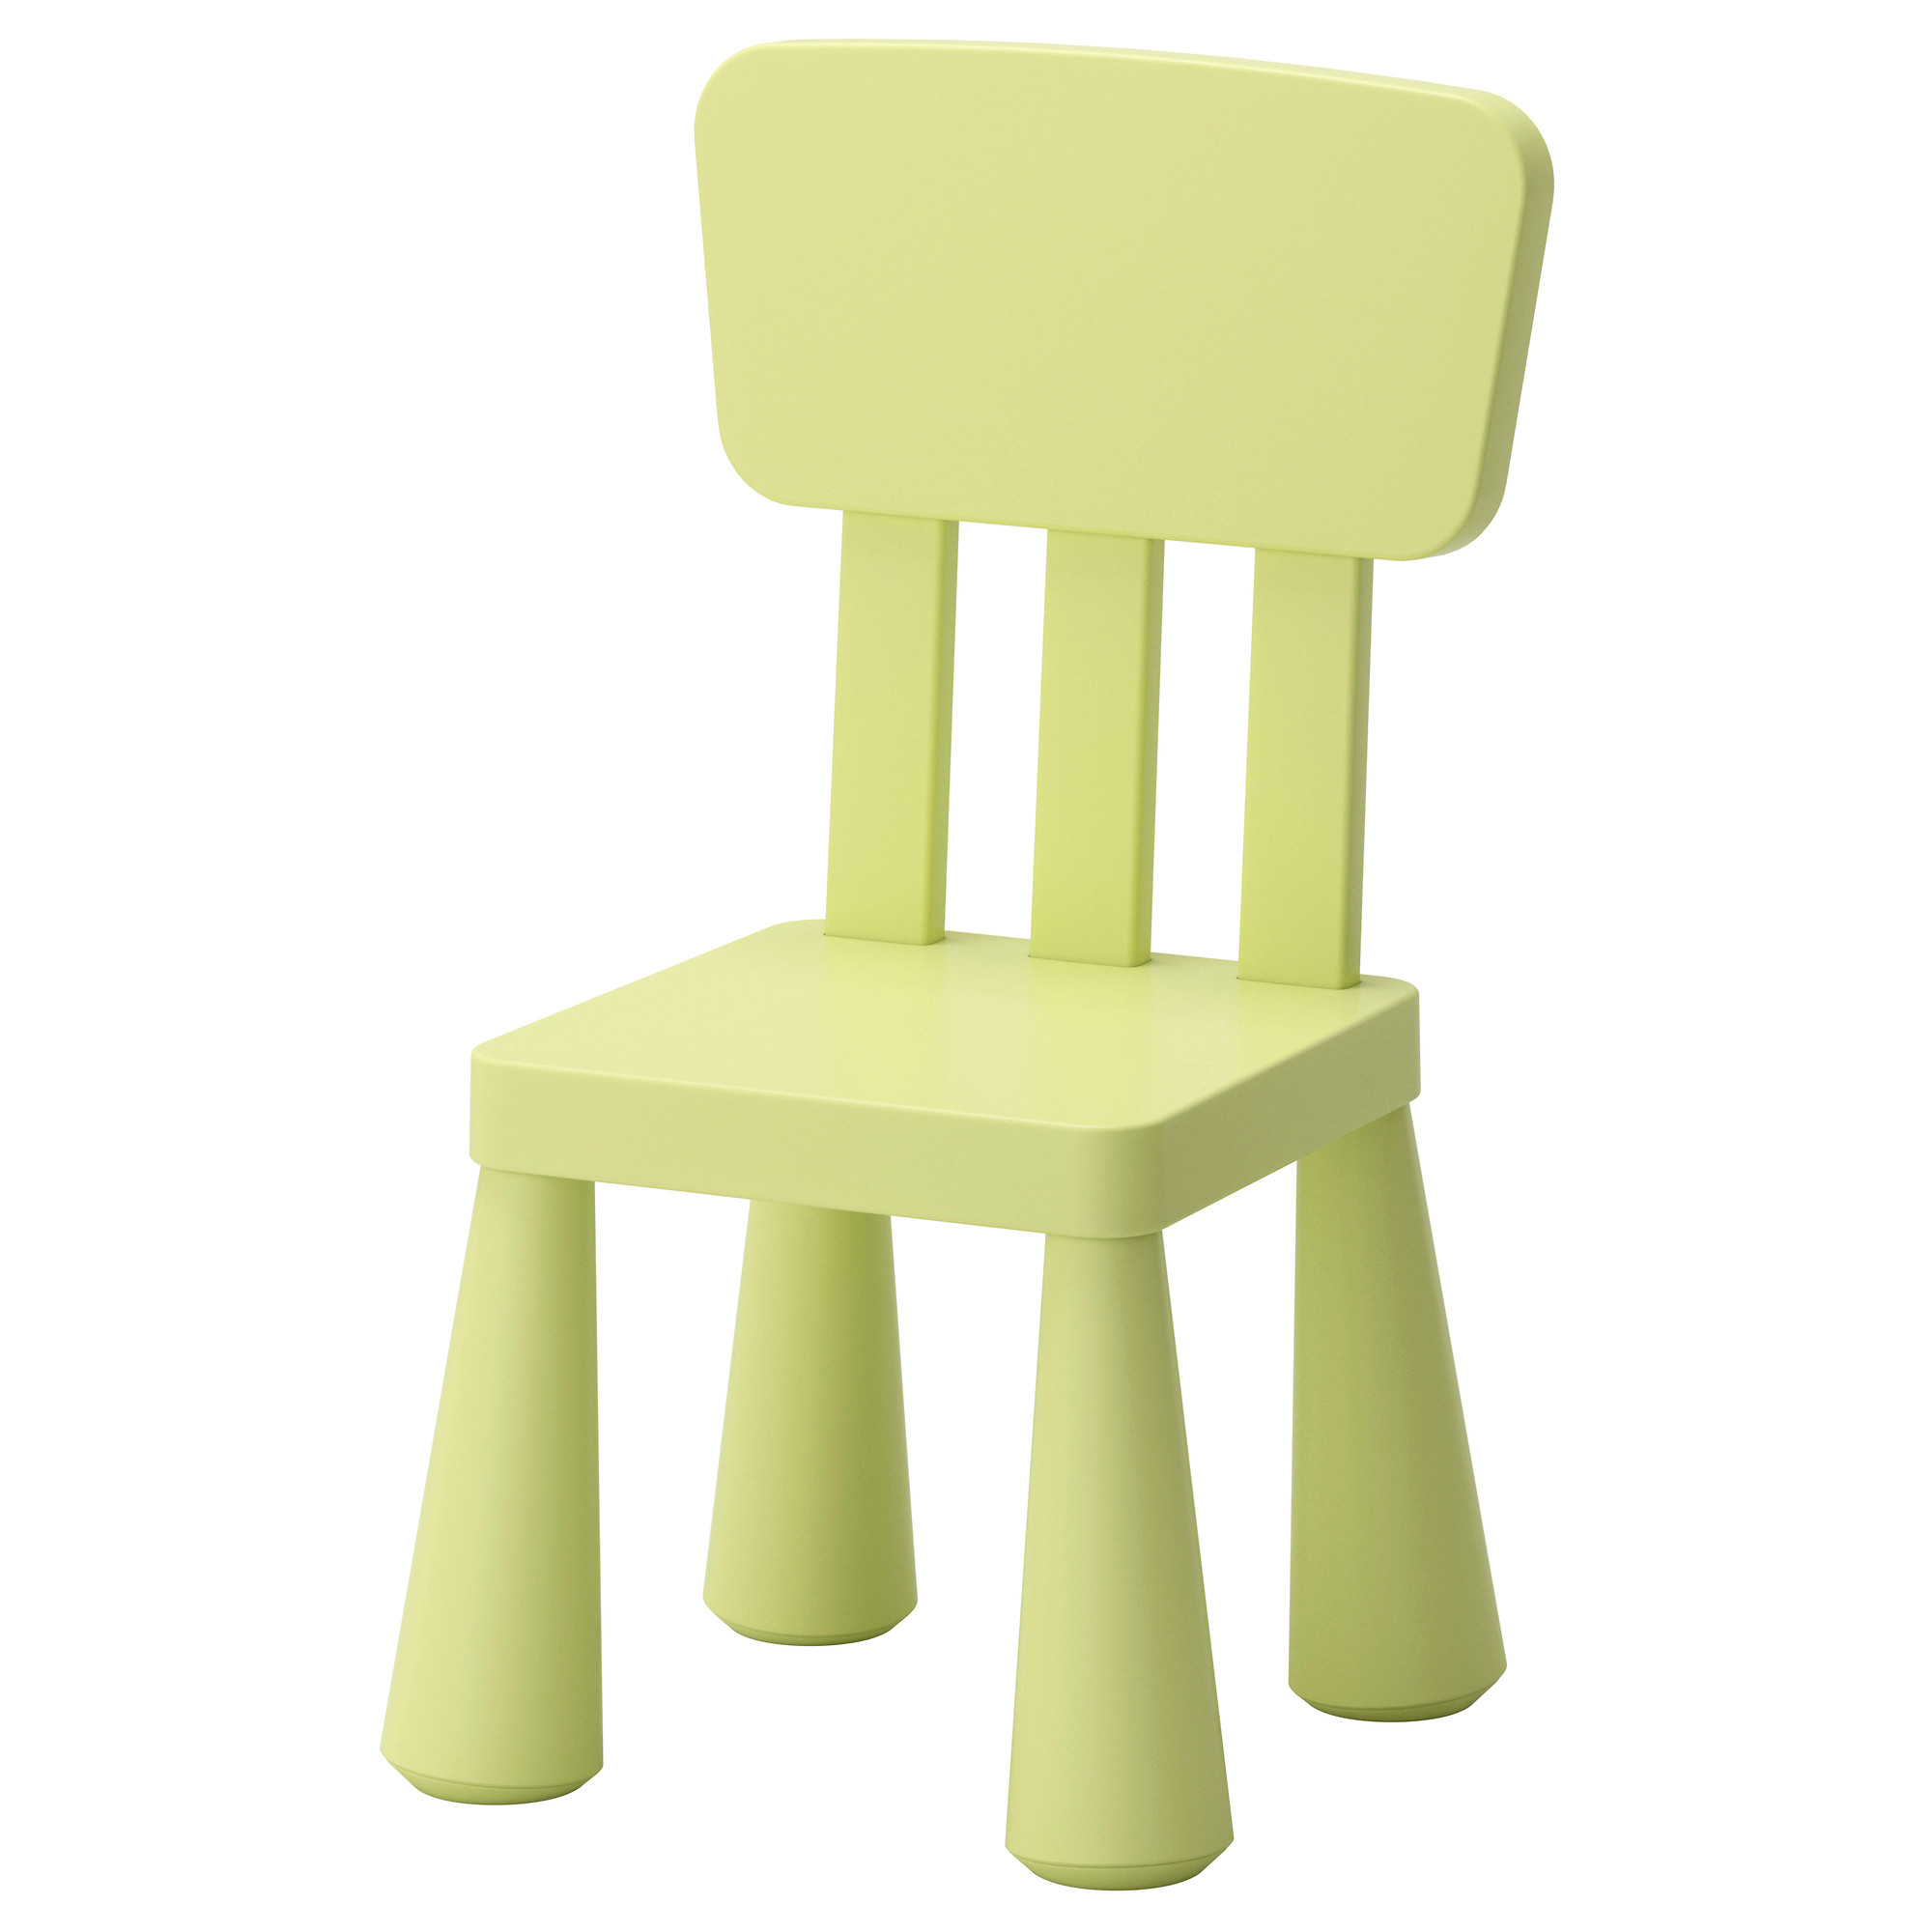 Modern childrens chairs ikea mammut childrenu0027s chair easy to assemble - you just click the prezmyl